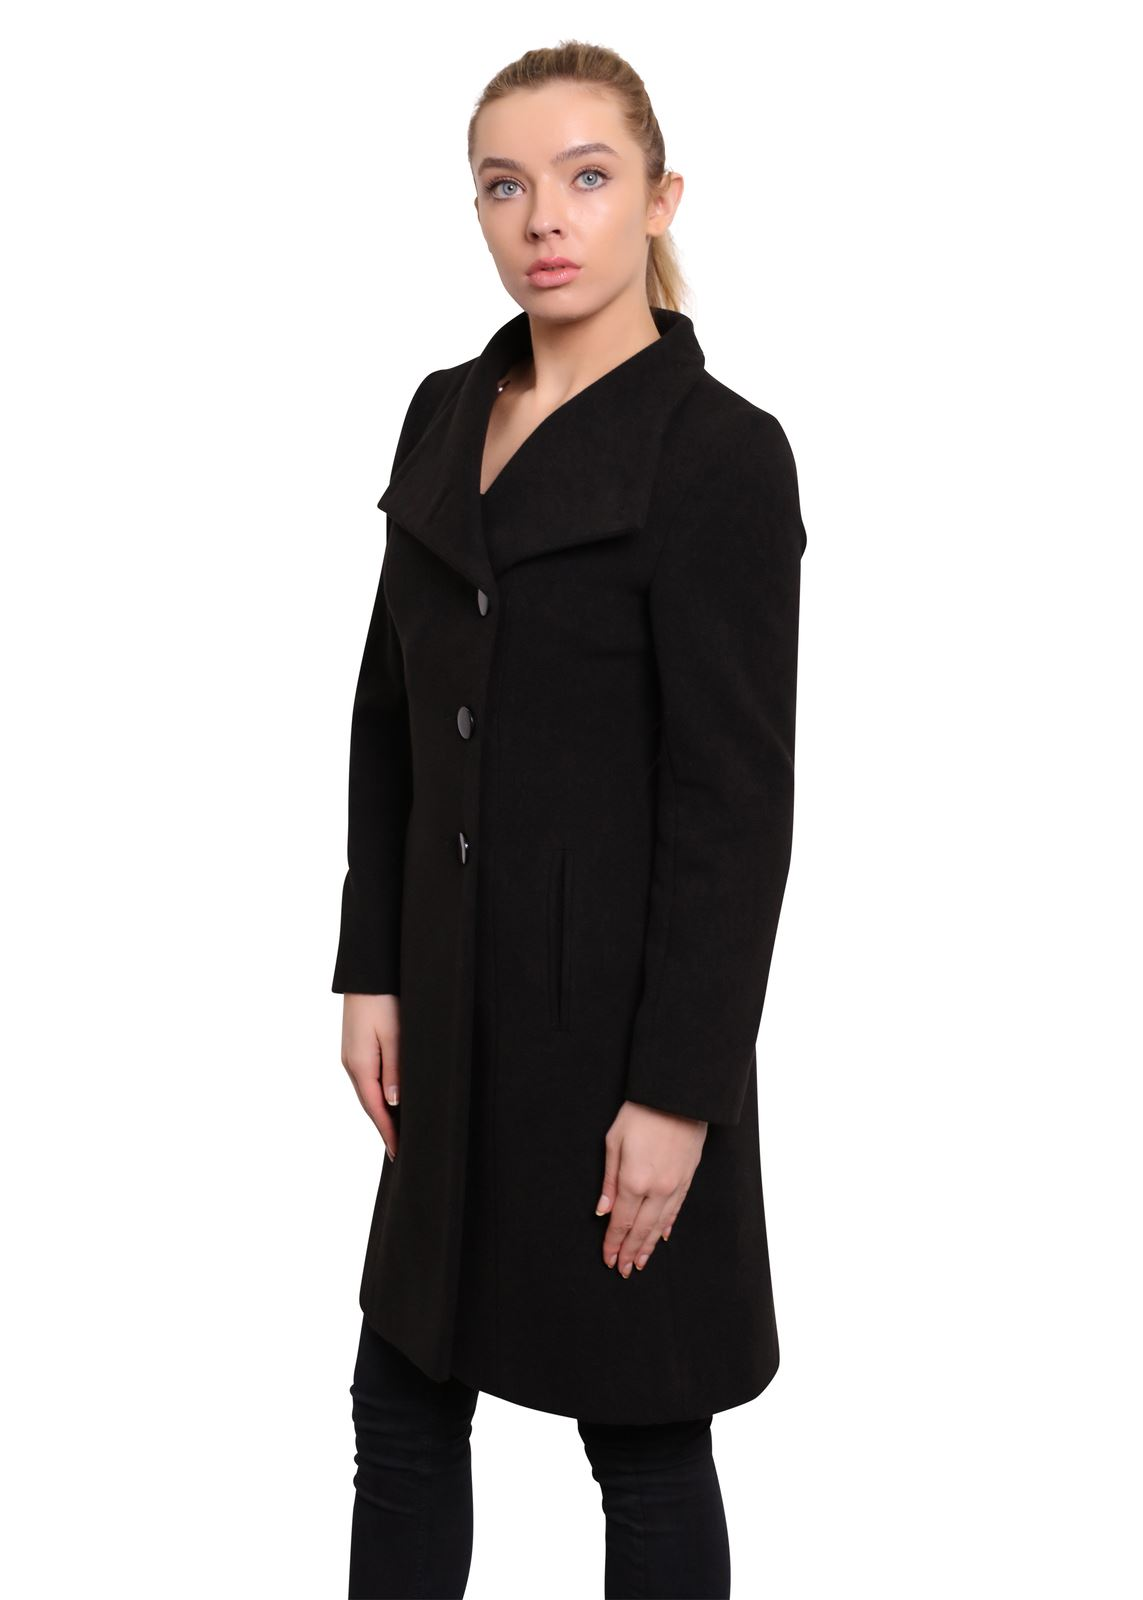 De-La-Creme-Womens-Funnel-Neck-Wool-amp-Cashmere-Blend-Keep-It-Simple-Coat thumbnail 4